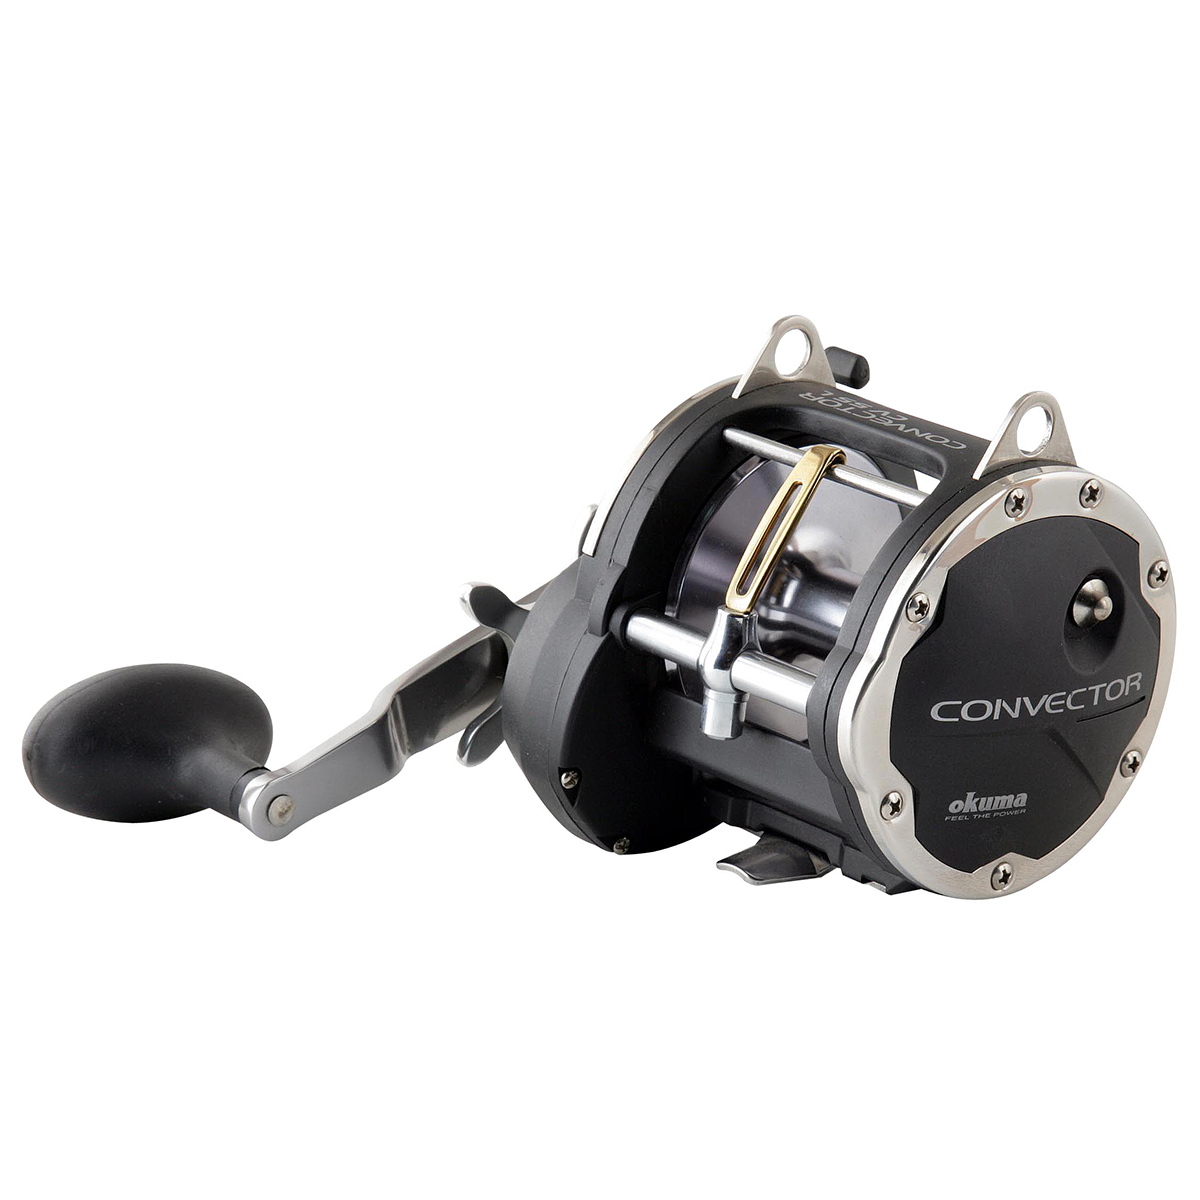 Convector Star Drag Reel - Okuma Convector Star Drag Reel-Speed LOC pinion gear system -Okuma's patented mechanical stabilizing system